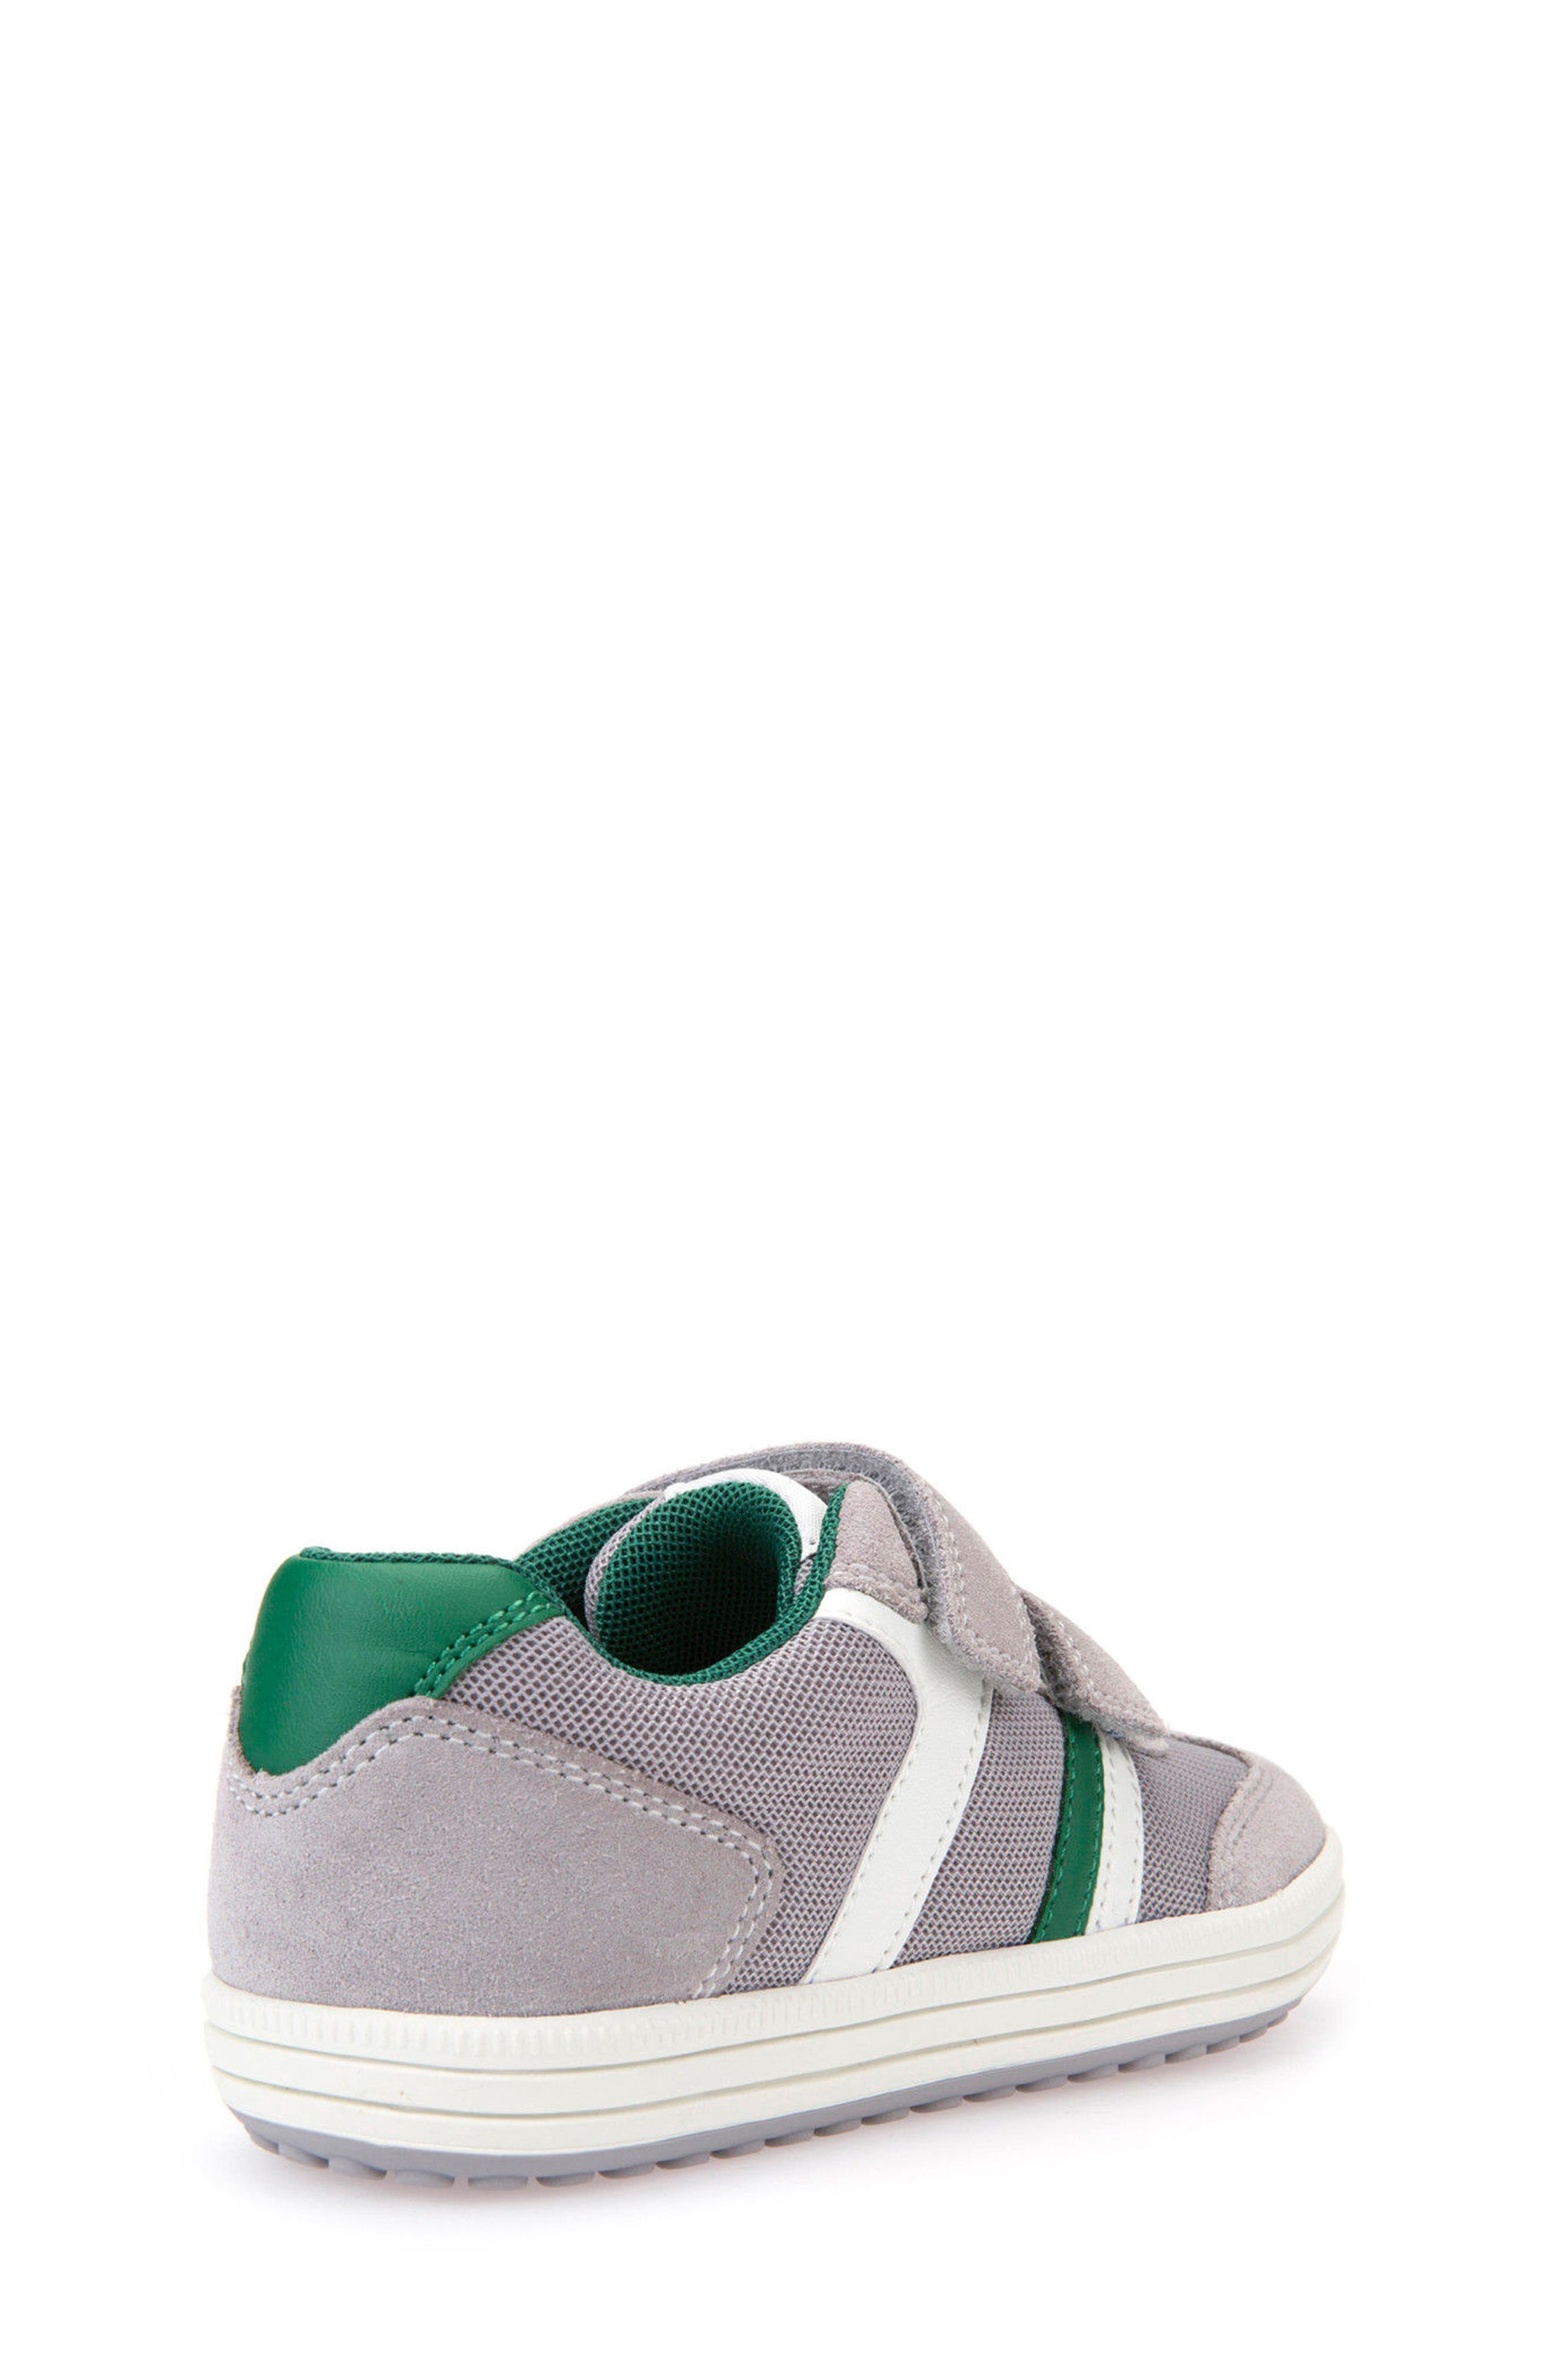 GEOX,                             Kilwi Sneaker,                             Alternate thumbnail 2, color,                             068